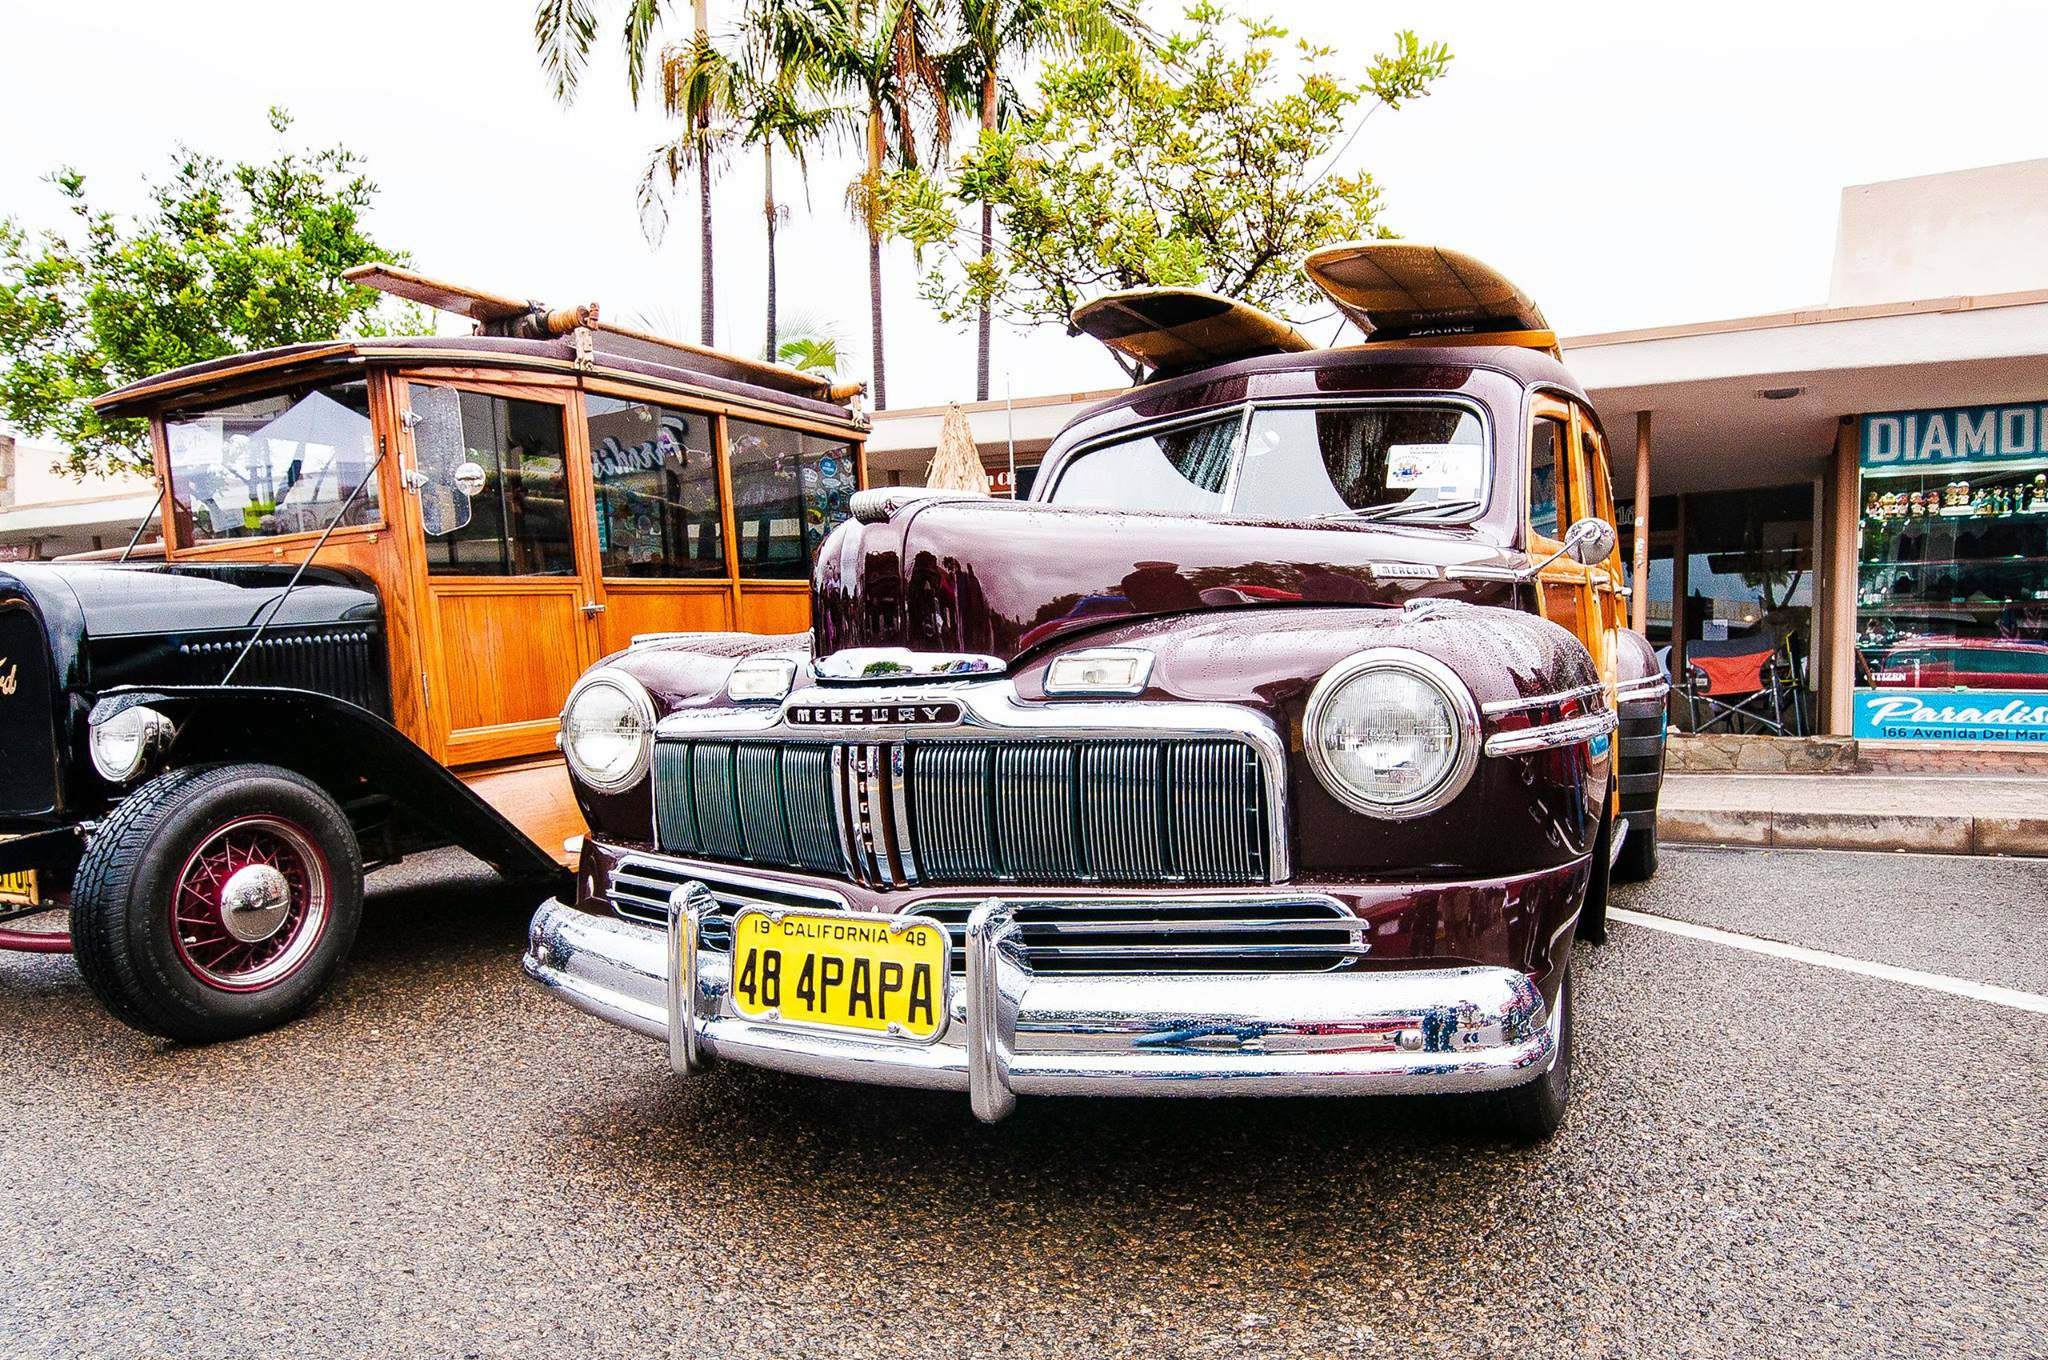 Photo Courtesy of San Clemente Car Show Facebook Page